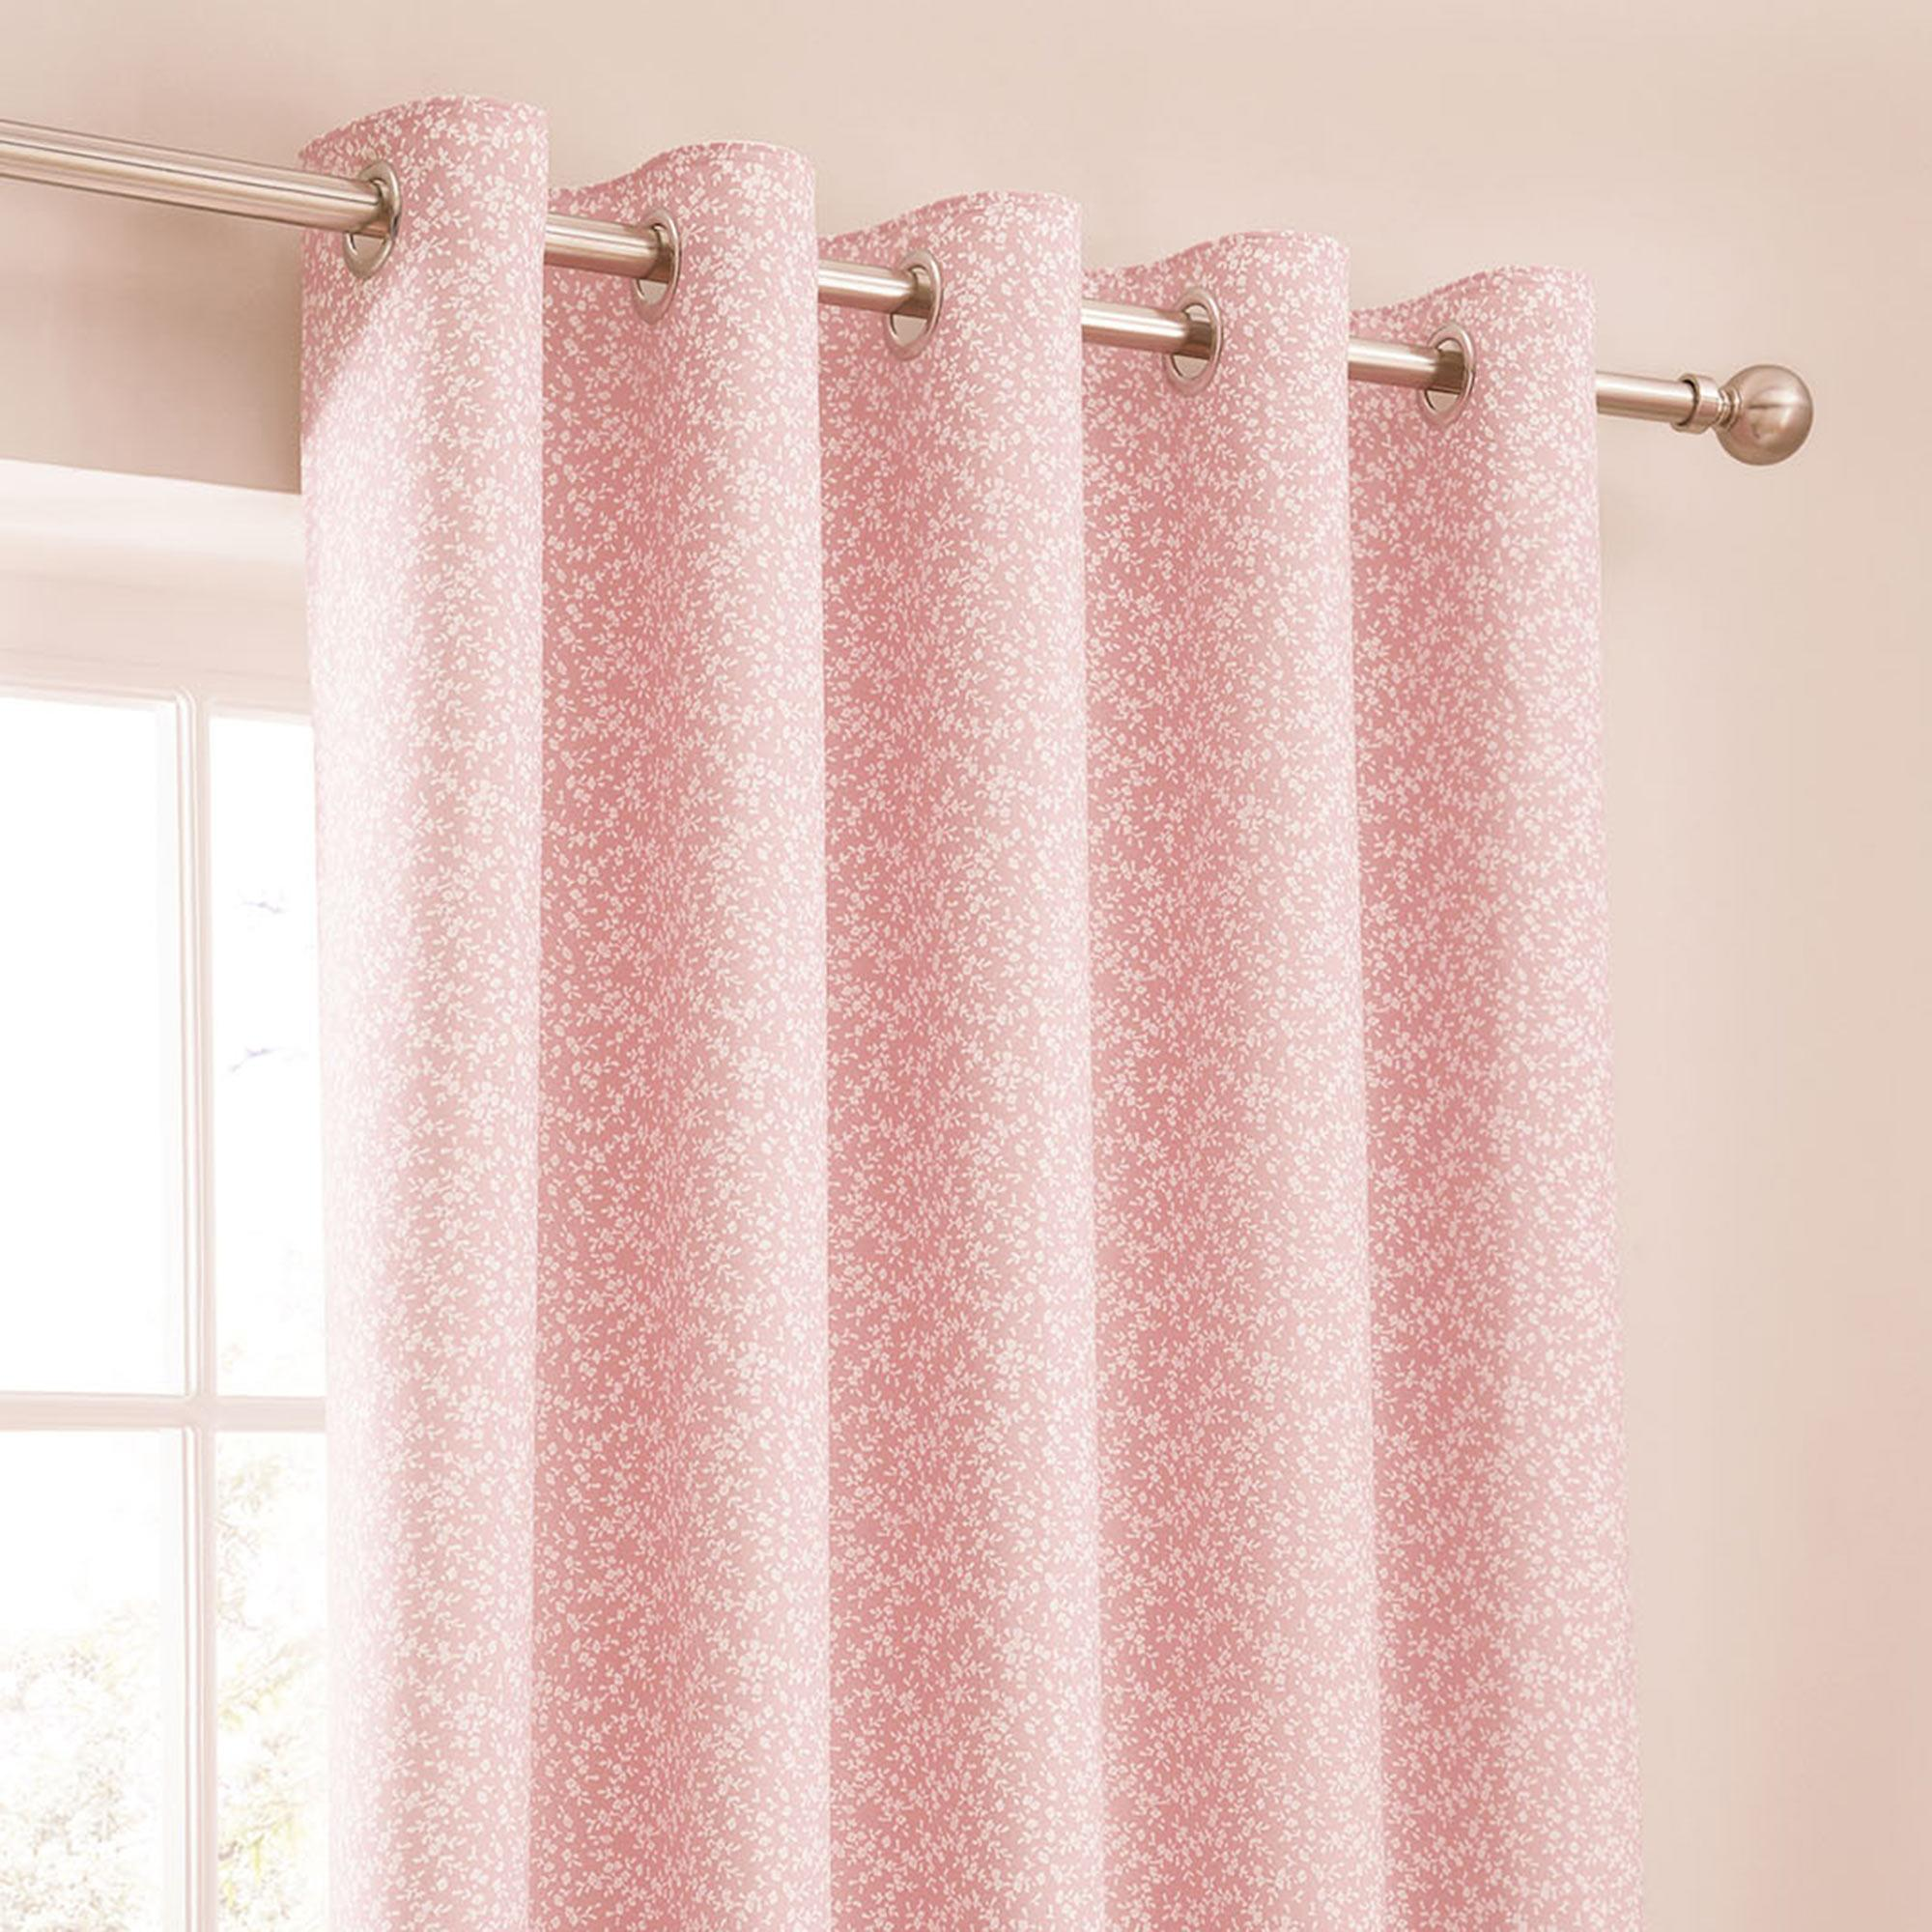 Stunning pink curtains annie pink thermal eyelet curtains | dunelm wlxtymj